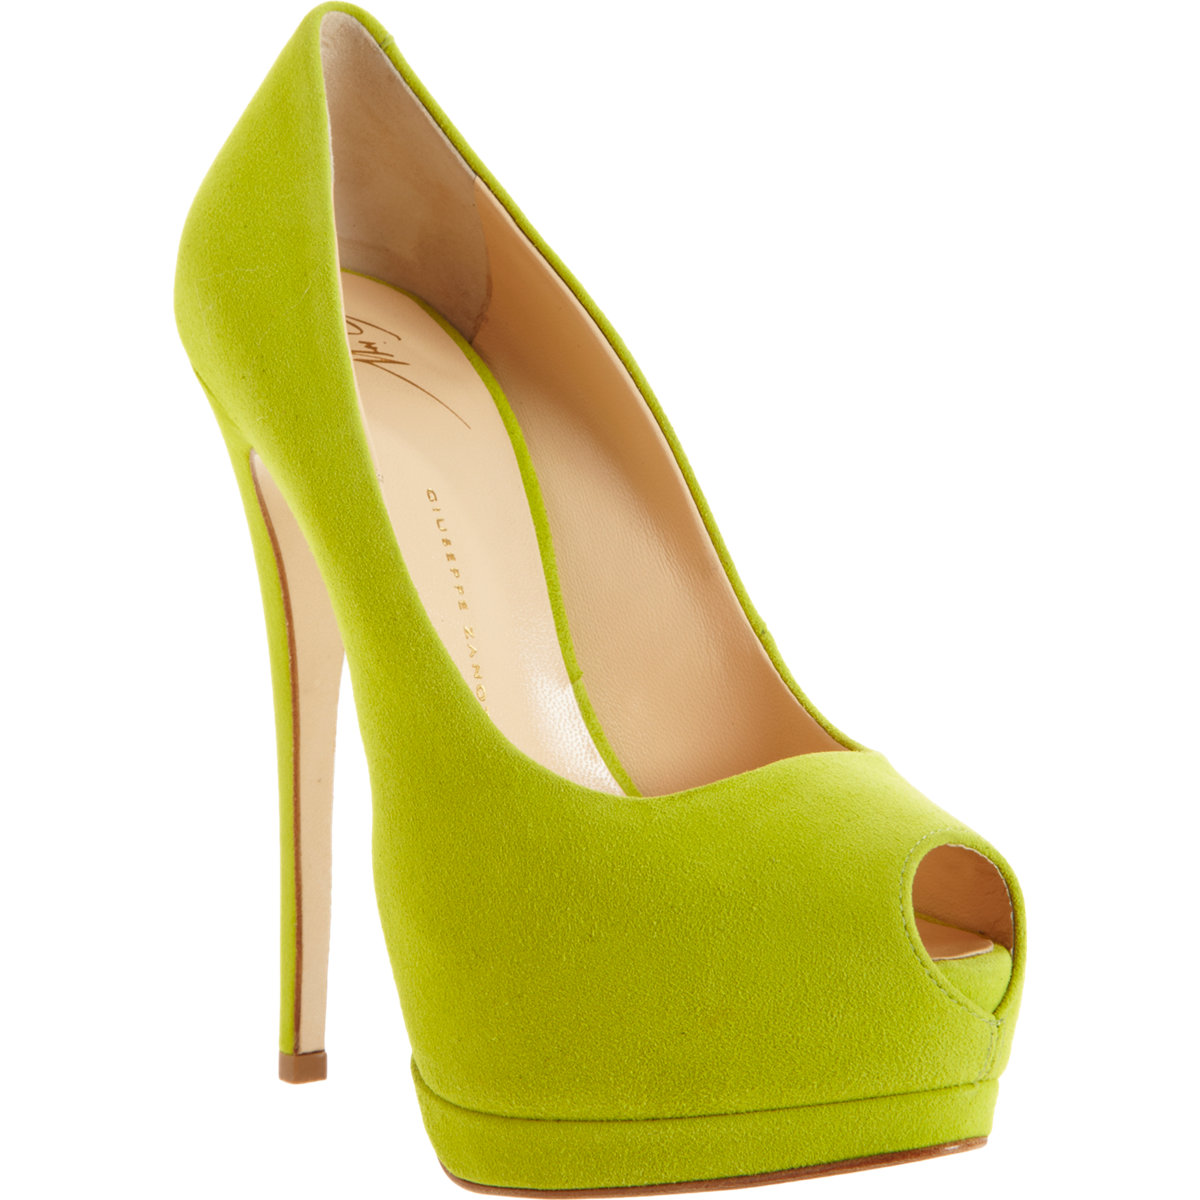 Green And Yellow Heels - Is Heel